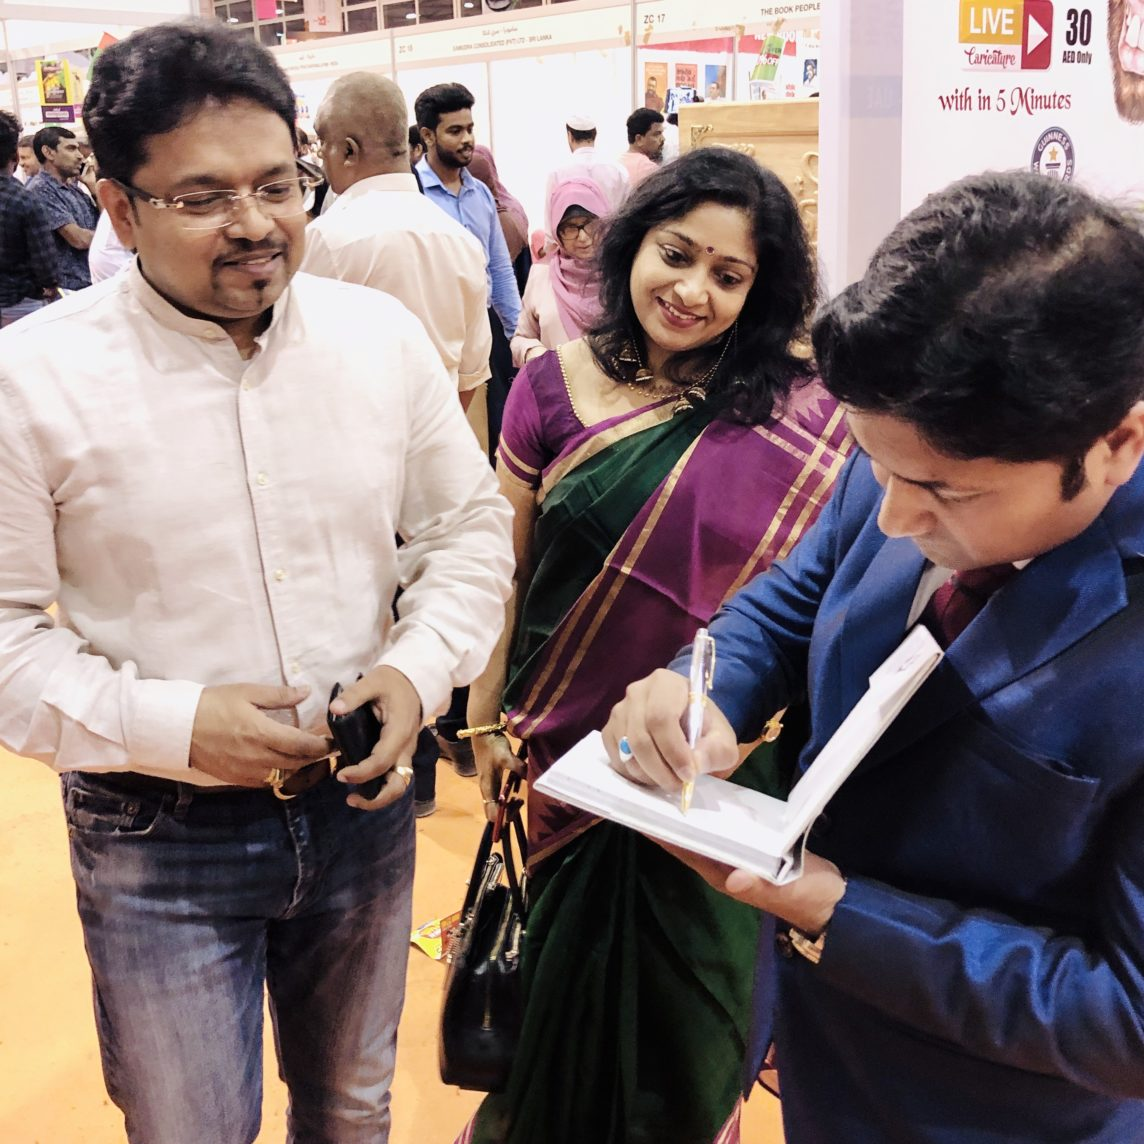 Book signing for Syam Panicker